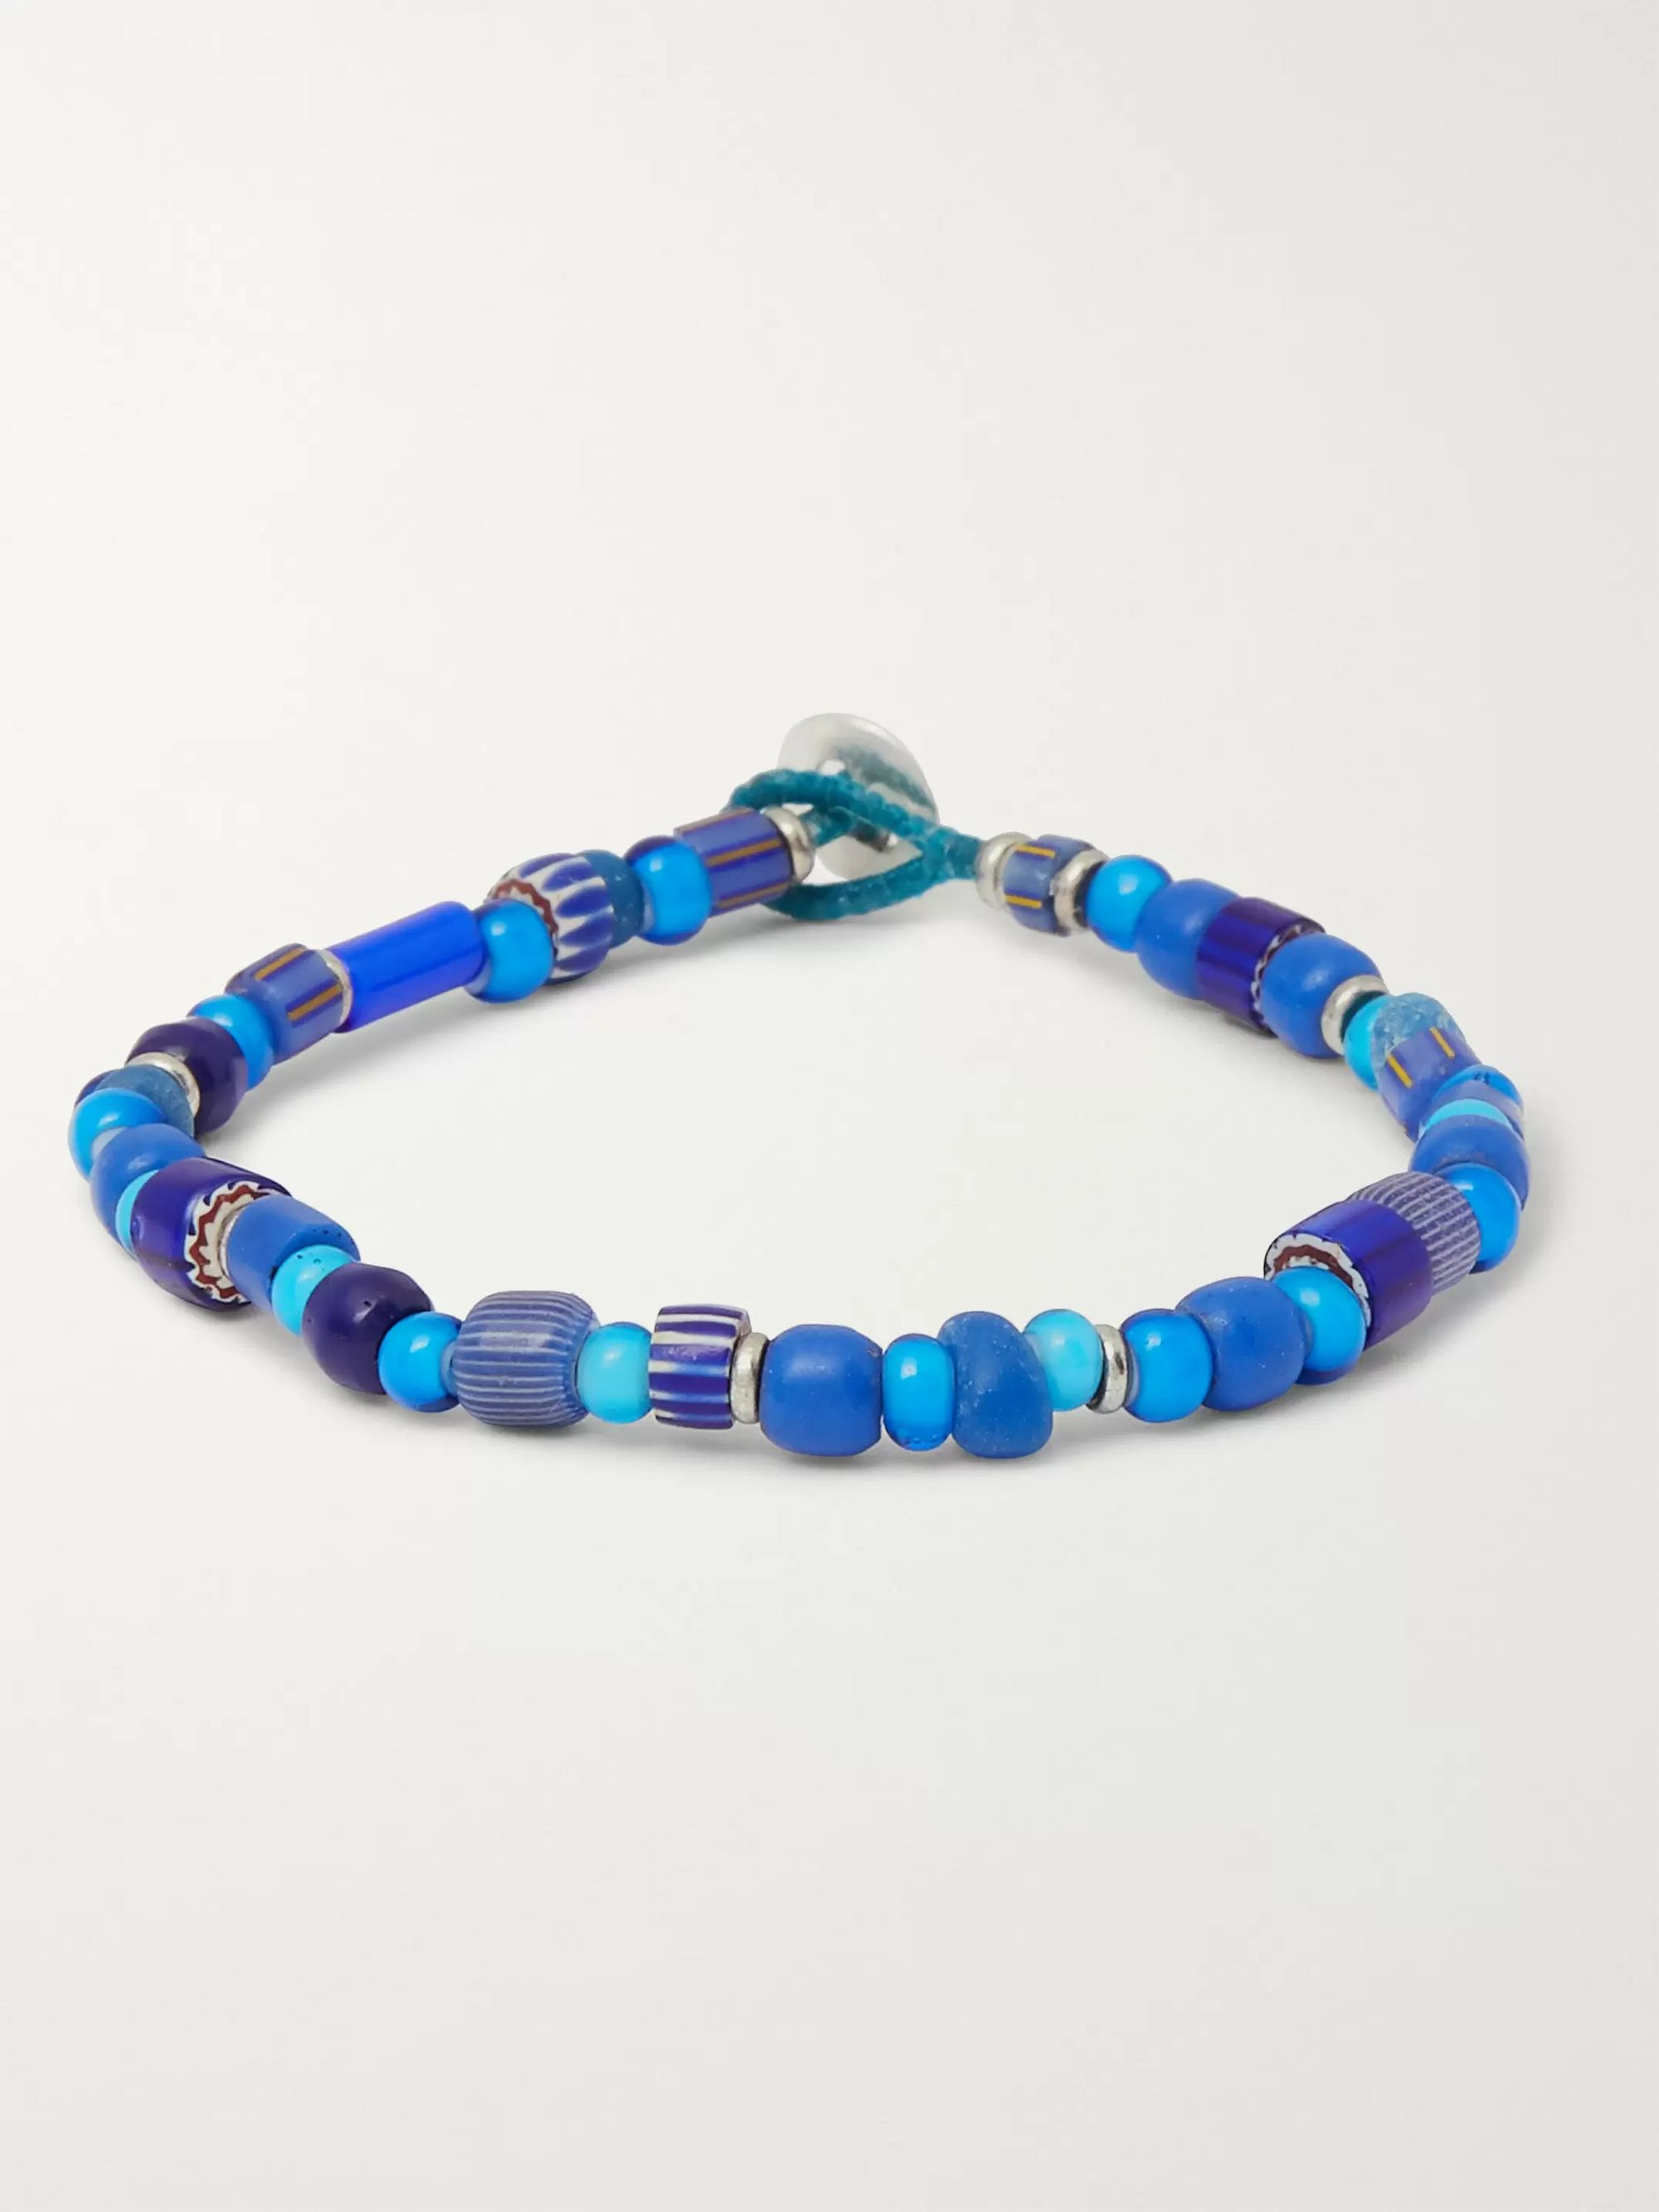 MIKIA Beaded Bracelet,Blue